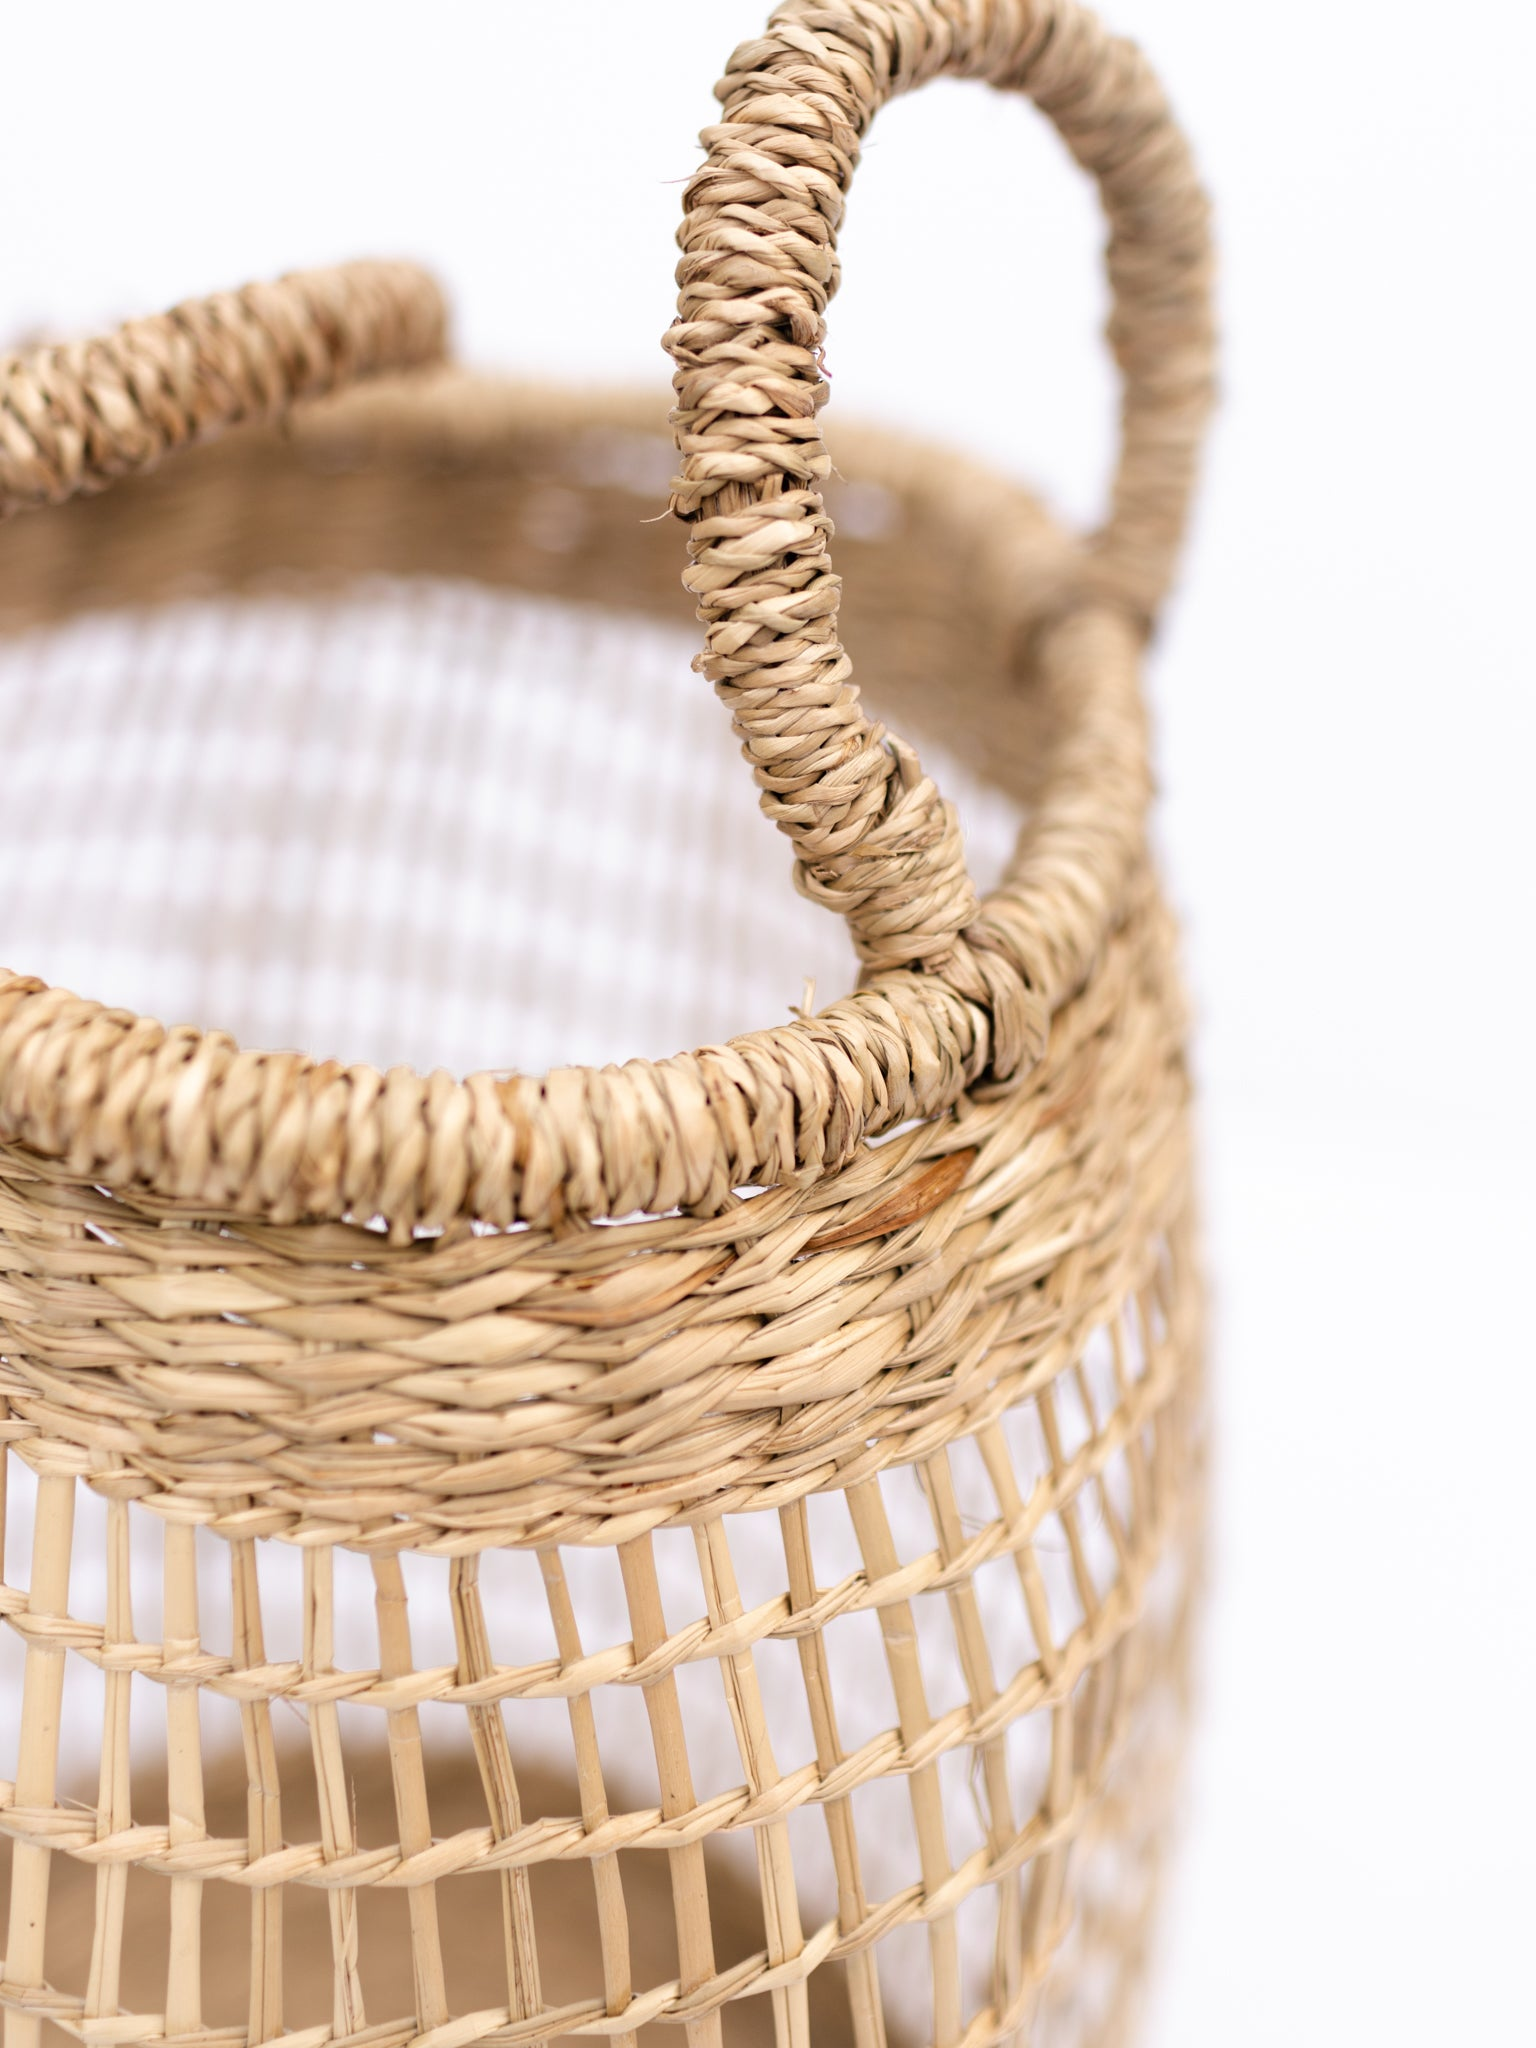 Sheer Seagrass Baskets